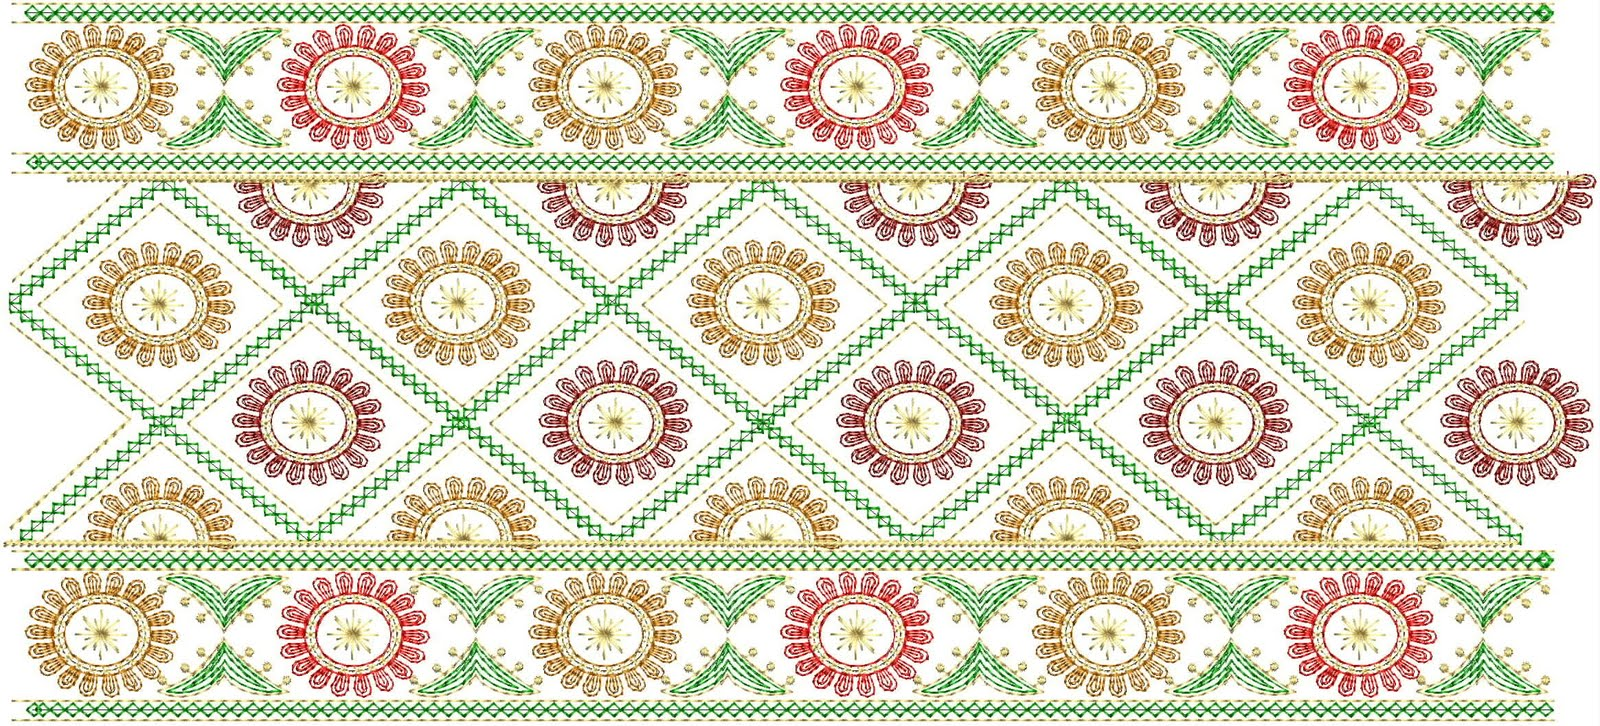 Embroidery Designs  33  Emb Lace Border